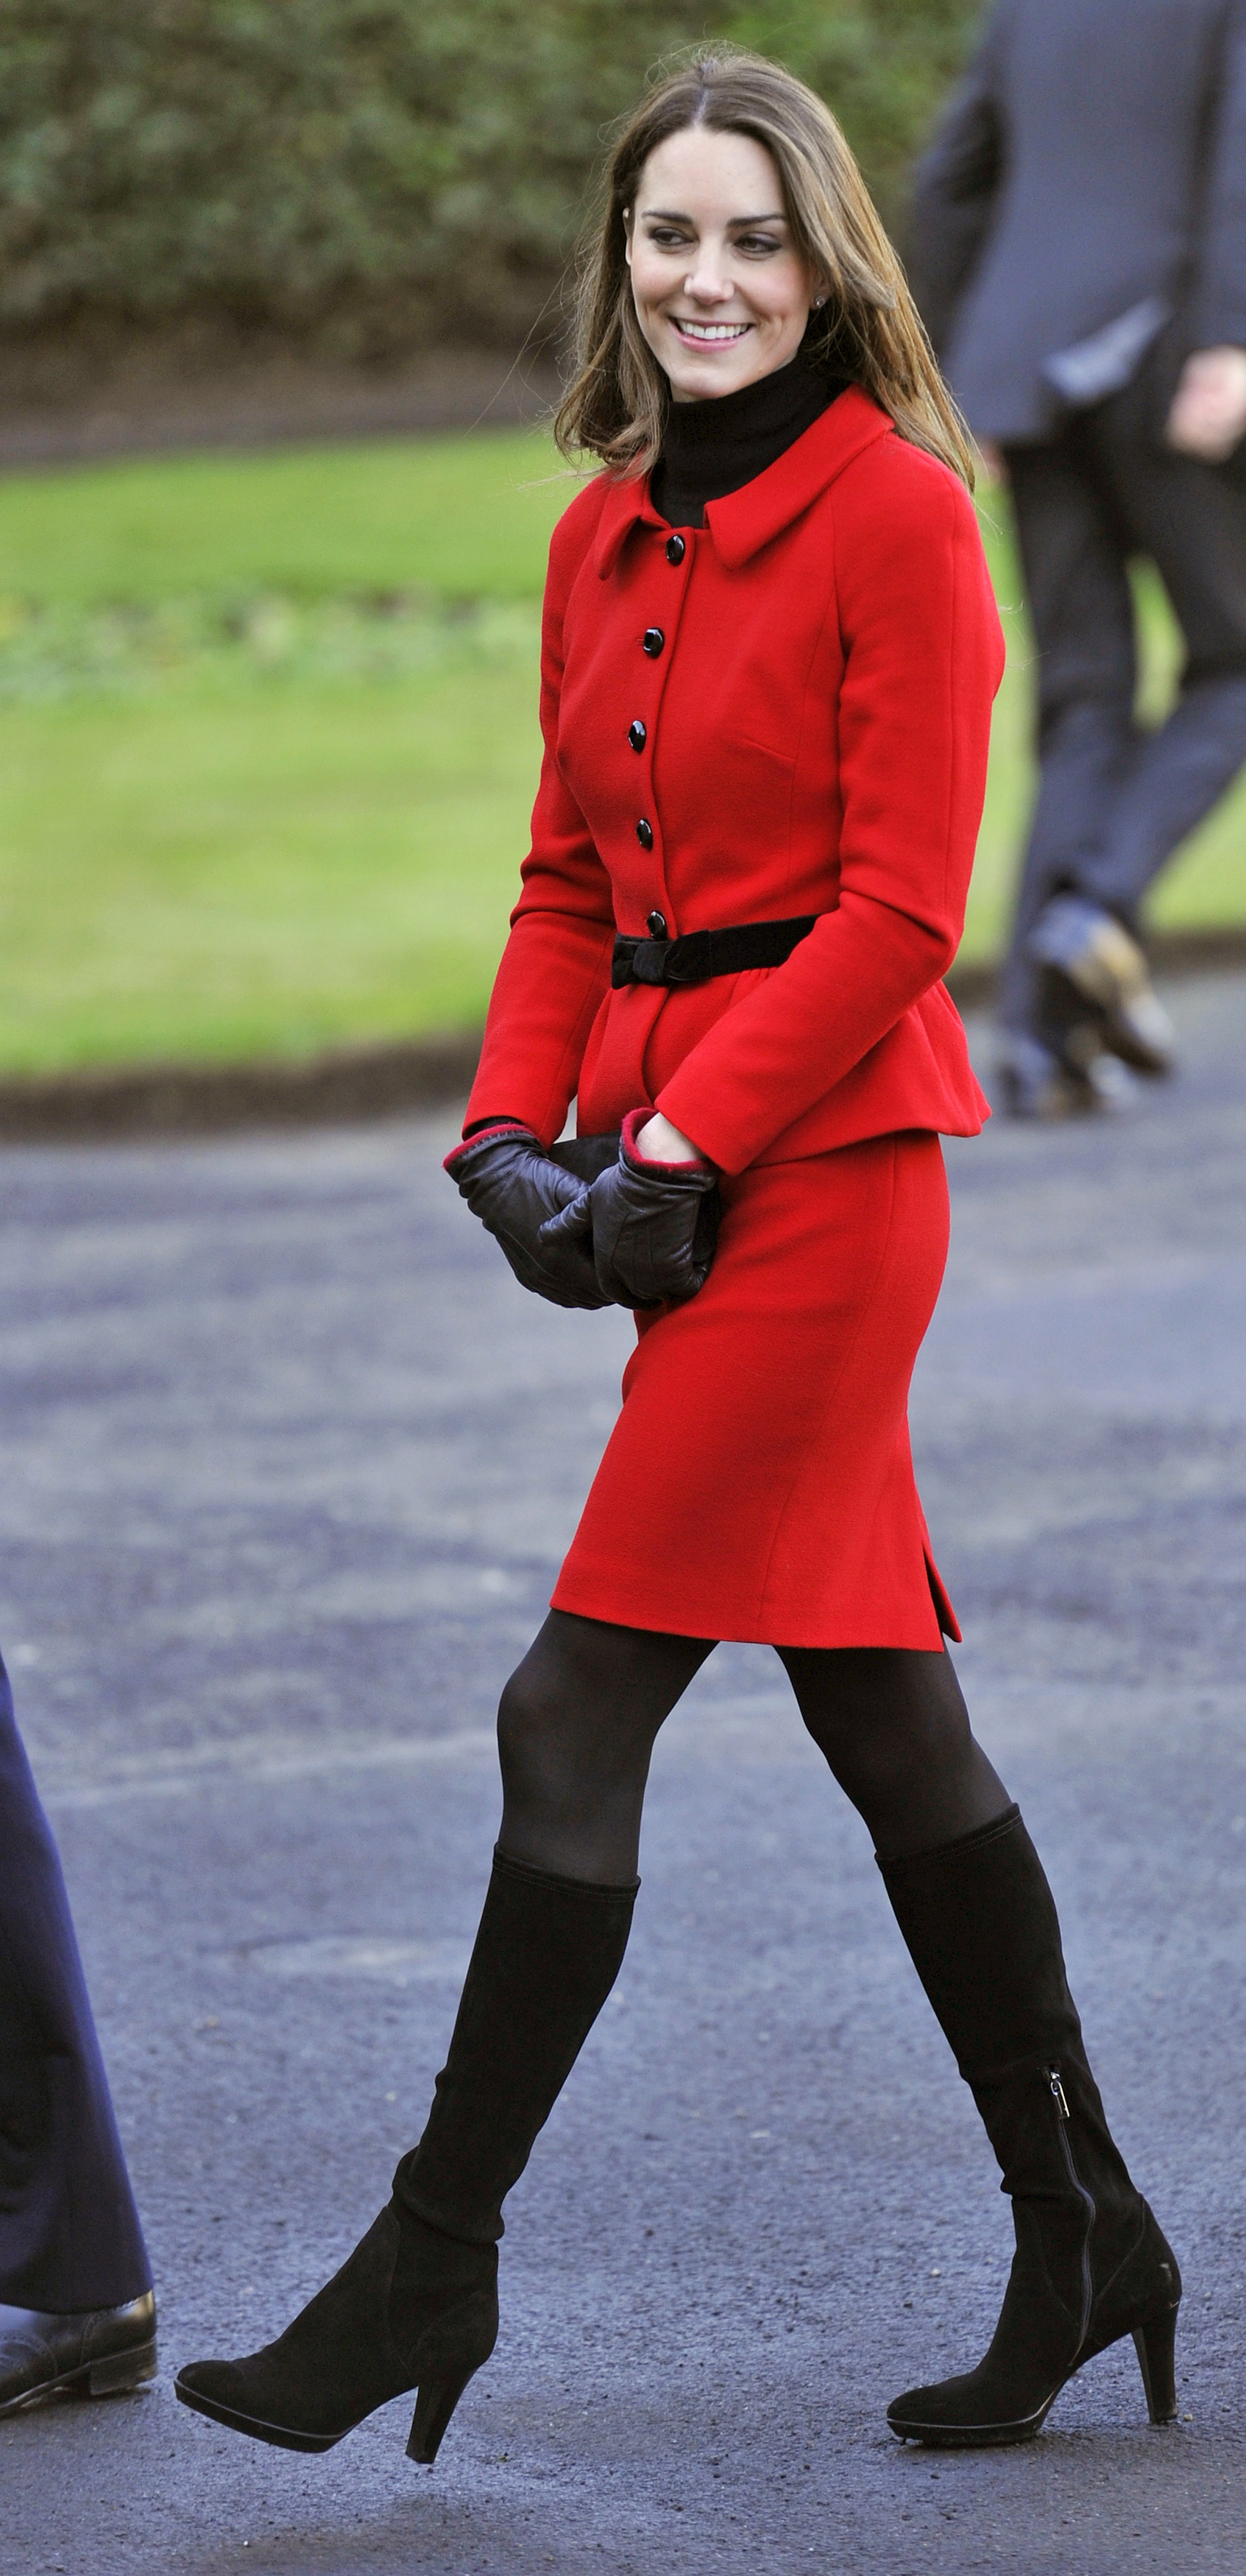 <strong>The Lady in Red</strong>                                   Middleton wore red on Feb. 25, 2011 to commemorate the 600th anniversary of her and Prince William's alma mater, St. Andrew's University, where they met.